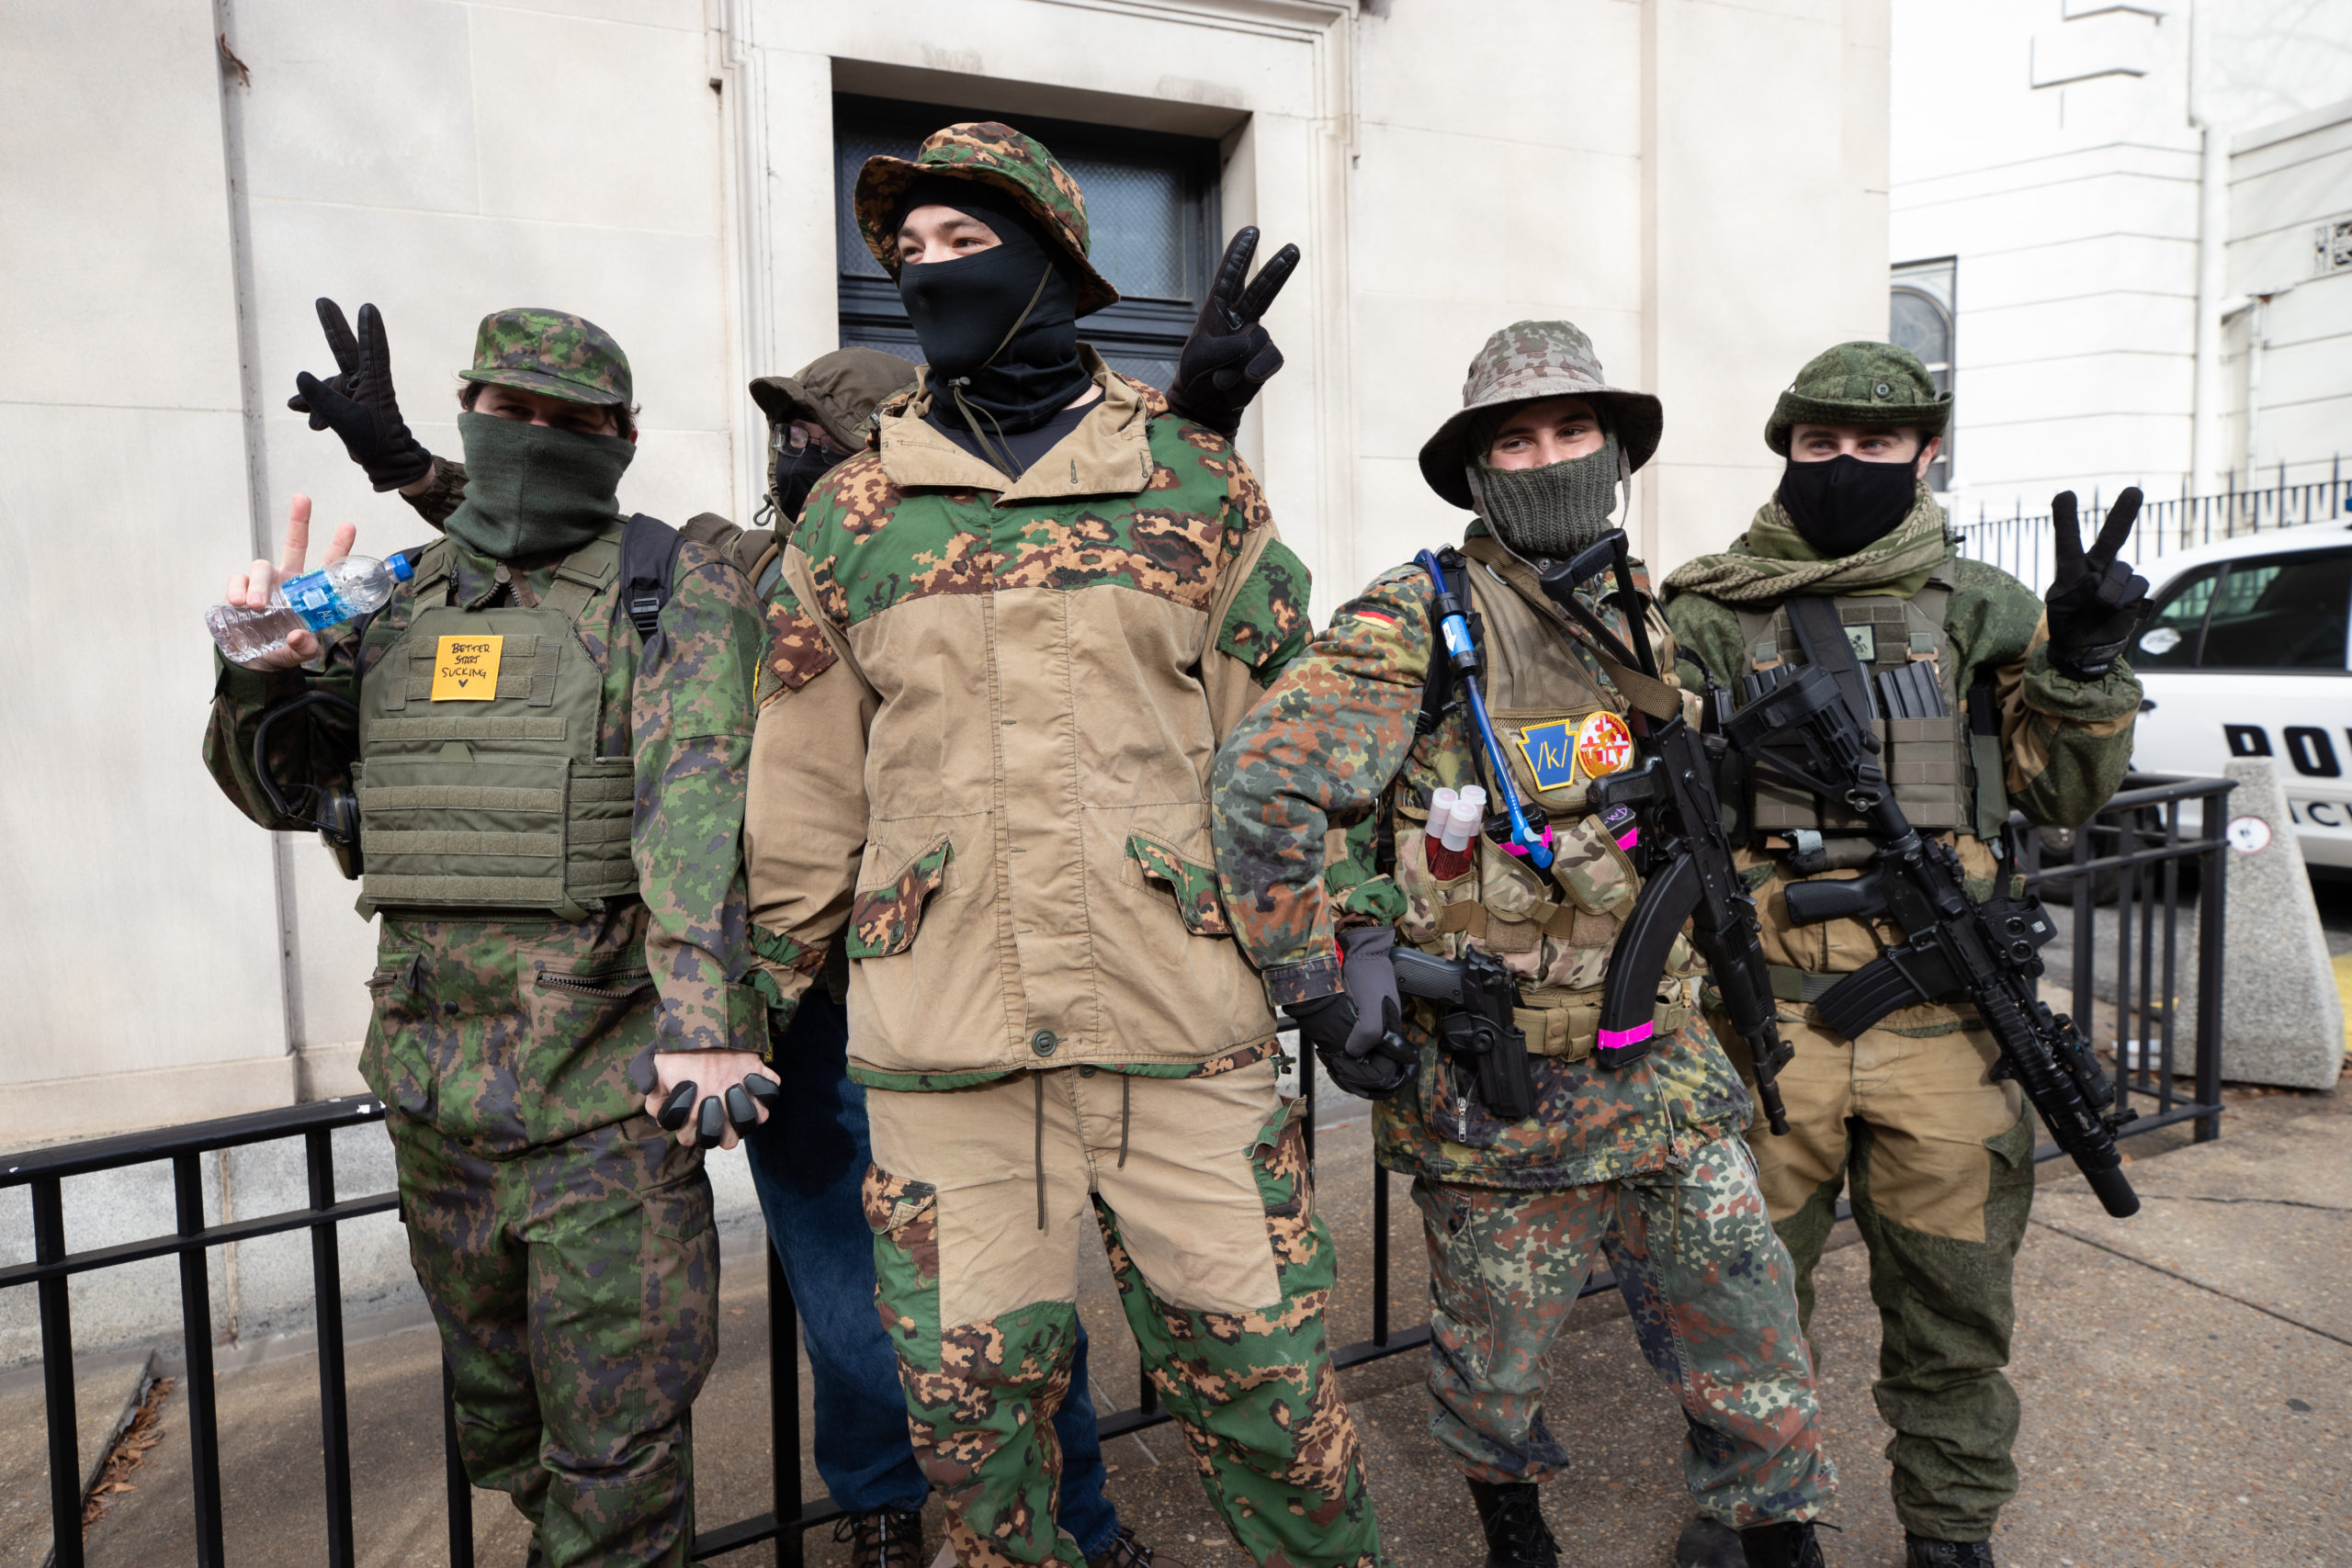 A group of armed demonstrators all wore patches associated with a 4 Chan board catalog in Richmond, Virginia on January 18, 2021. (Kaylee Greenlee - Daily Caller News Foundation)